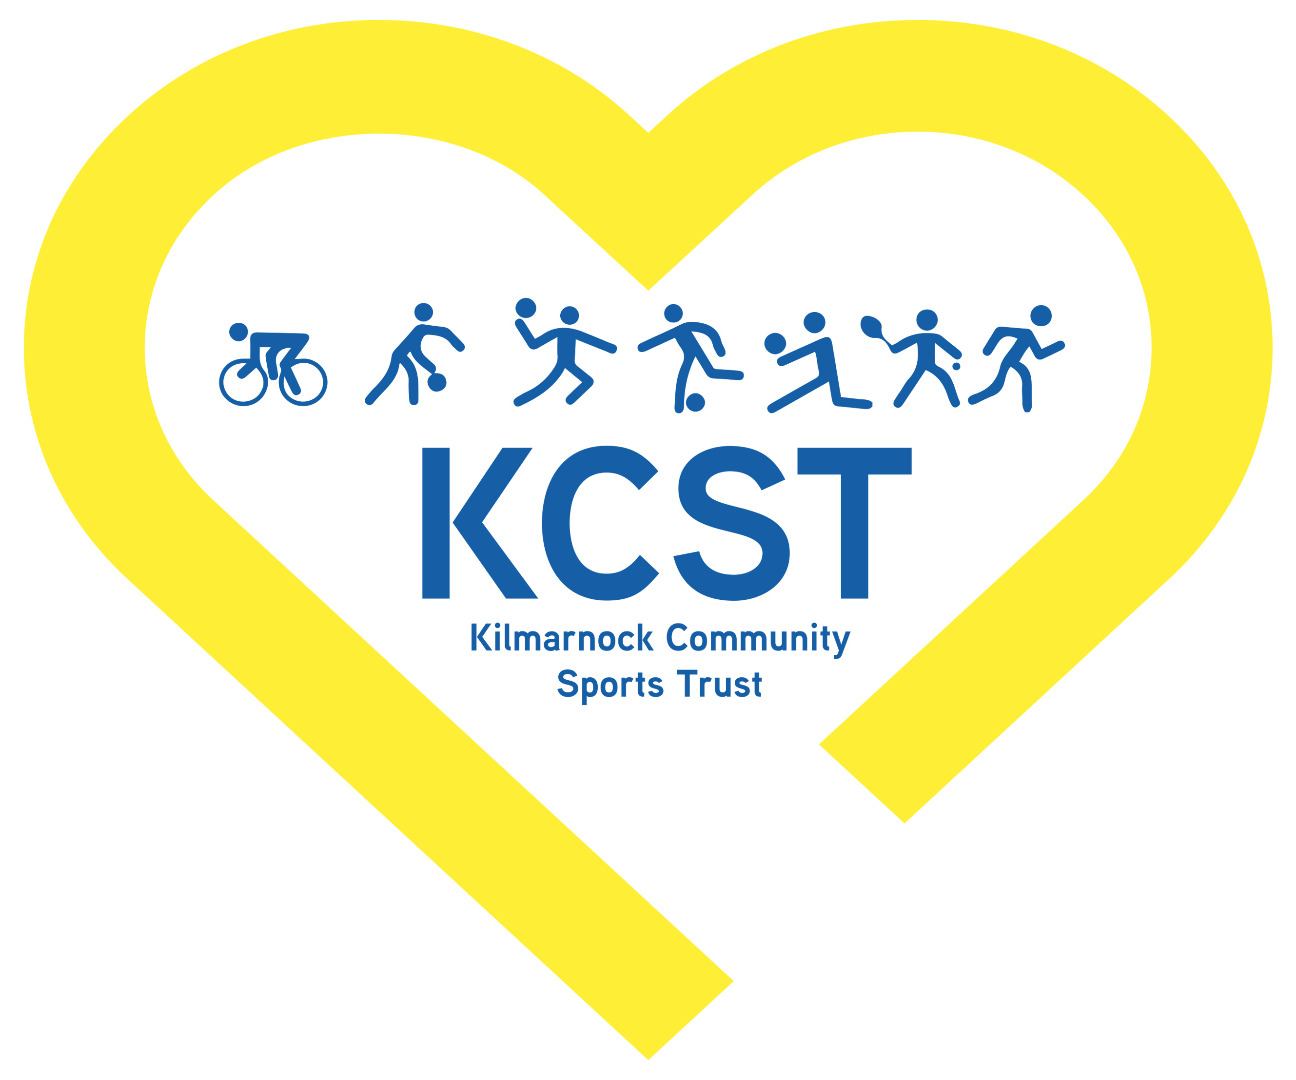 Kilmarnock Community Sports Trust (KCST) - QTS Partner